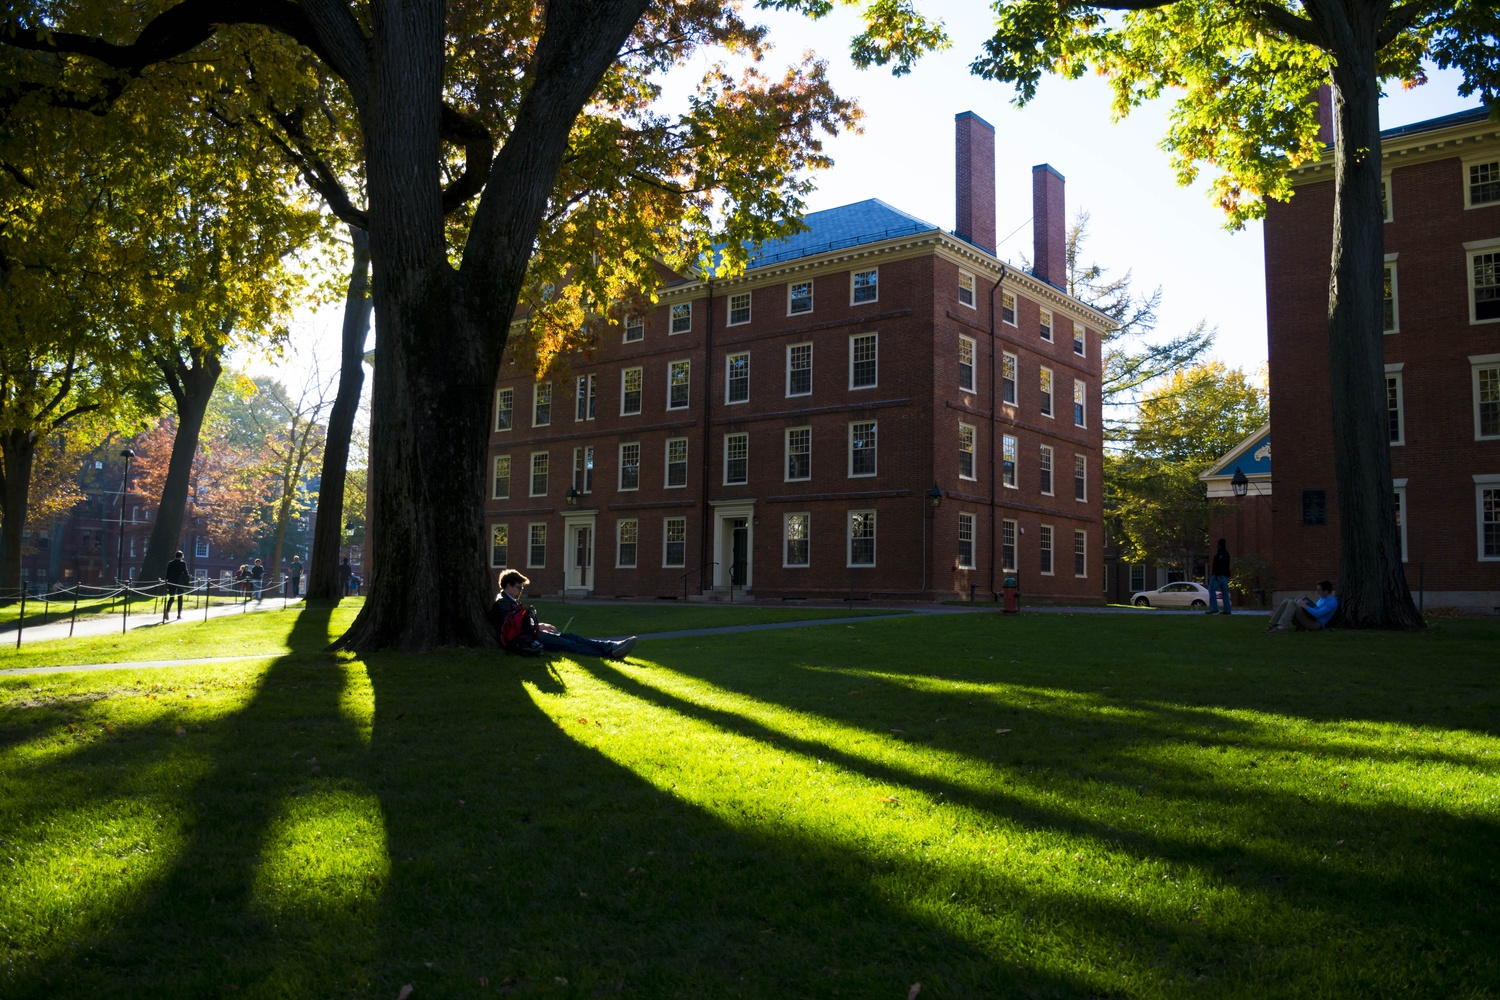 Harvard College announced the launch of a scholarship application for Harvard Summer School courses Tuesday morning.